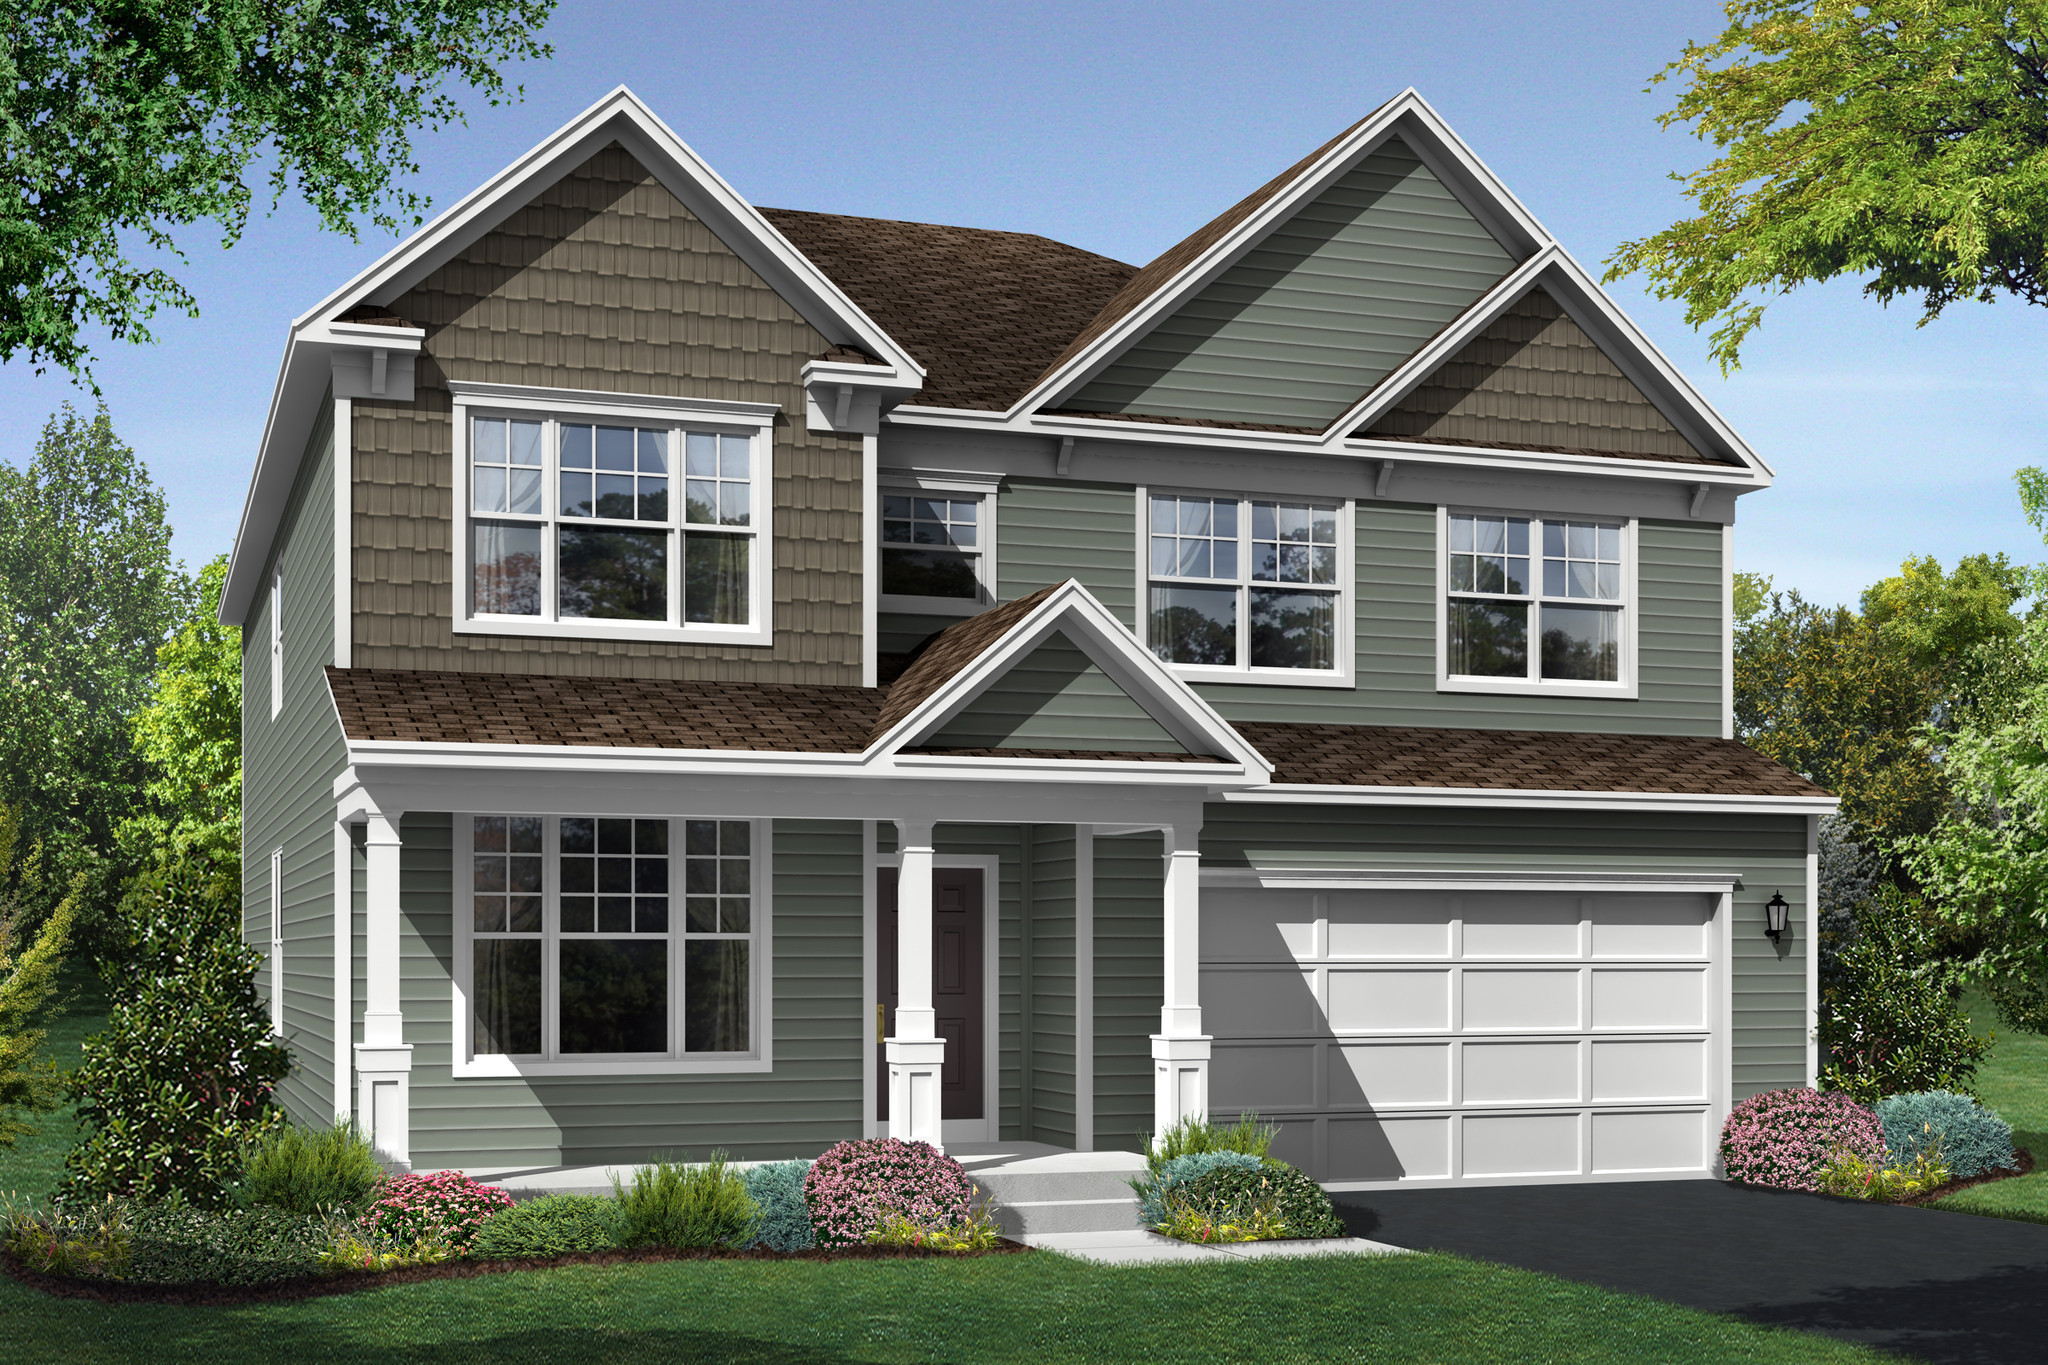 K Hovnanian Home Floor Plans Part - 19: K. Hovnanian Homes Breaks Ground On New Lisle Subdivision Arbor Trails -  Naperville Sun